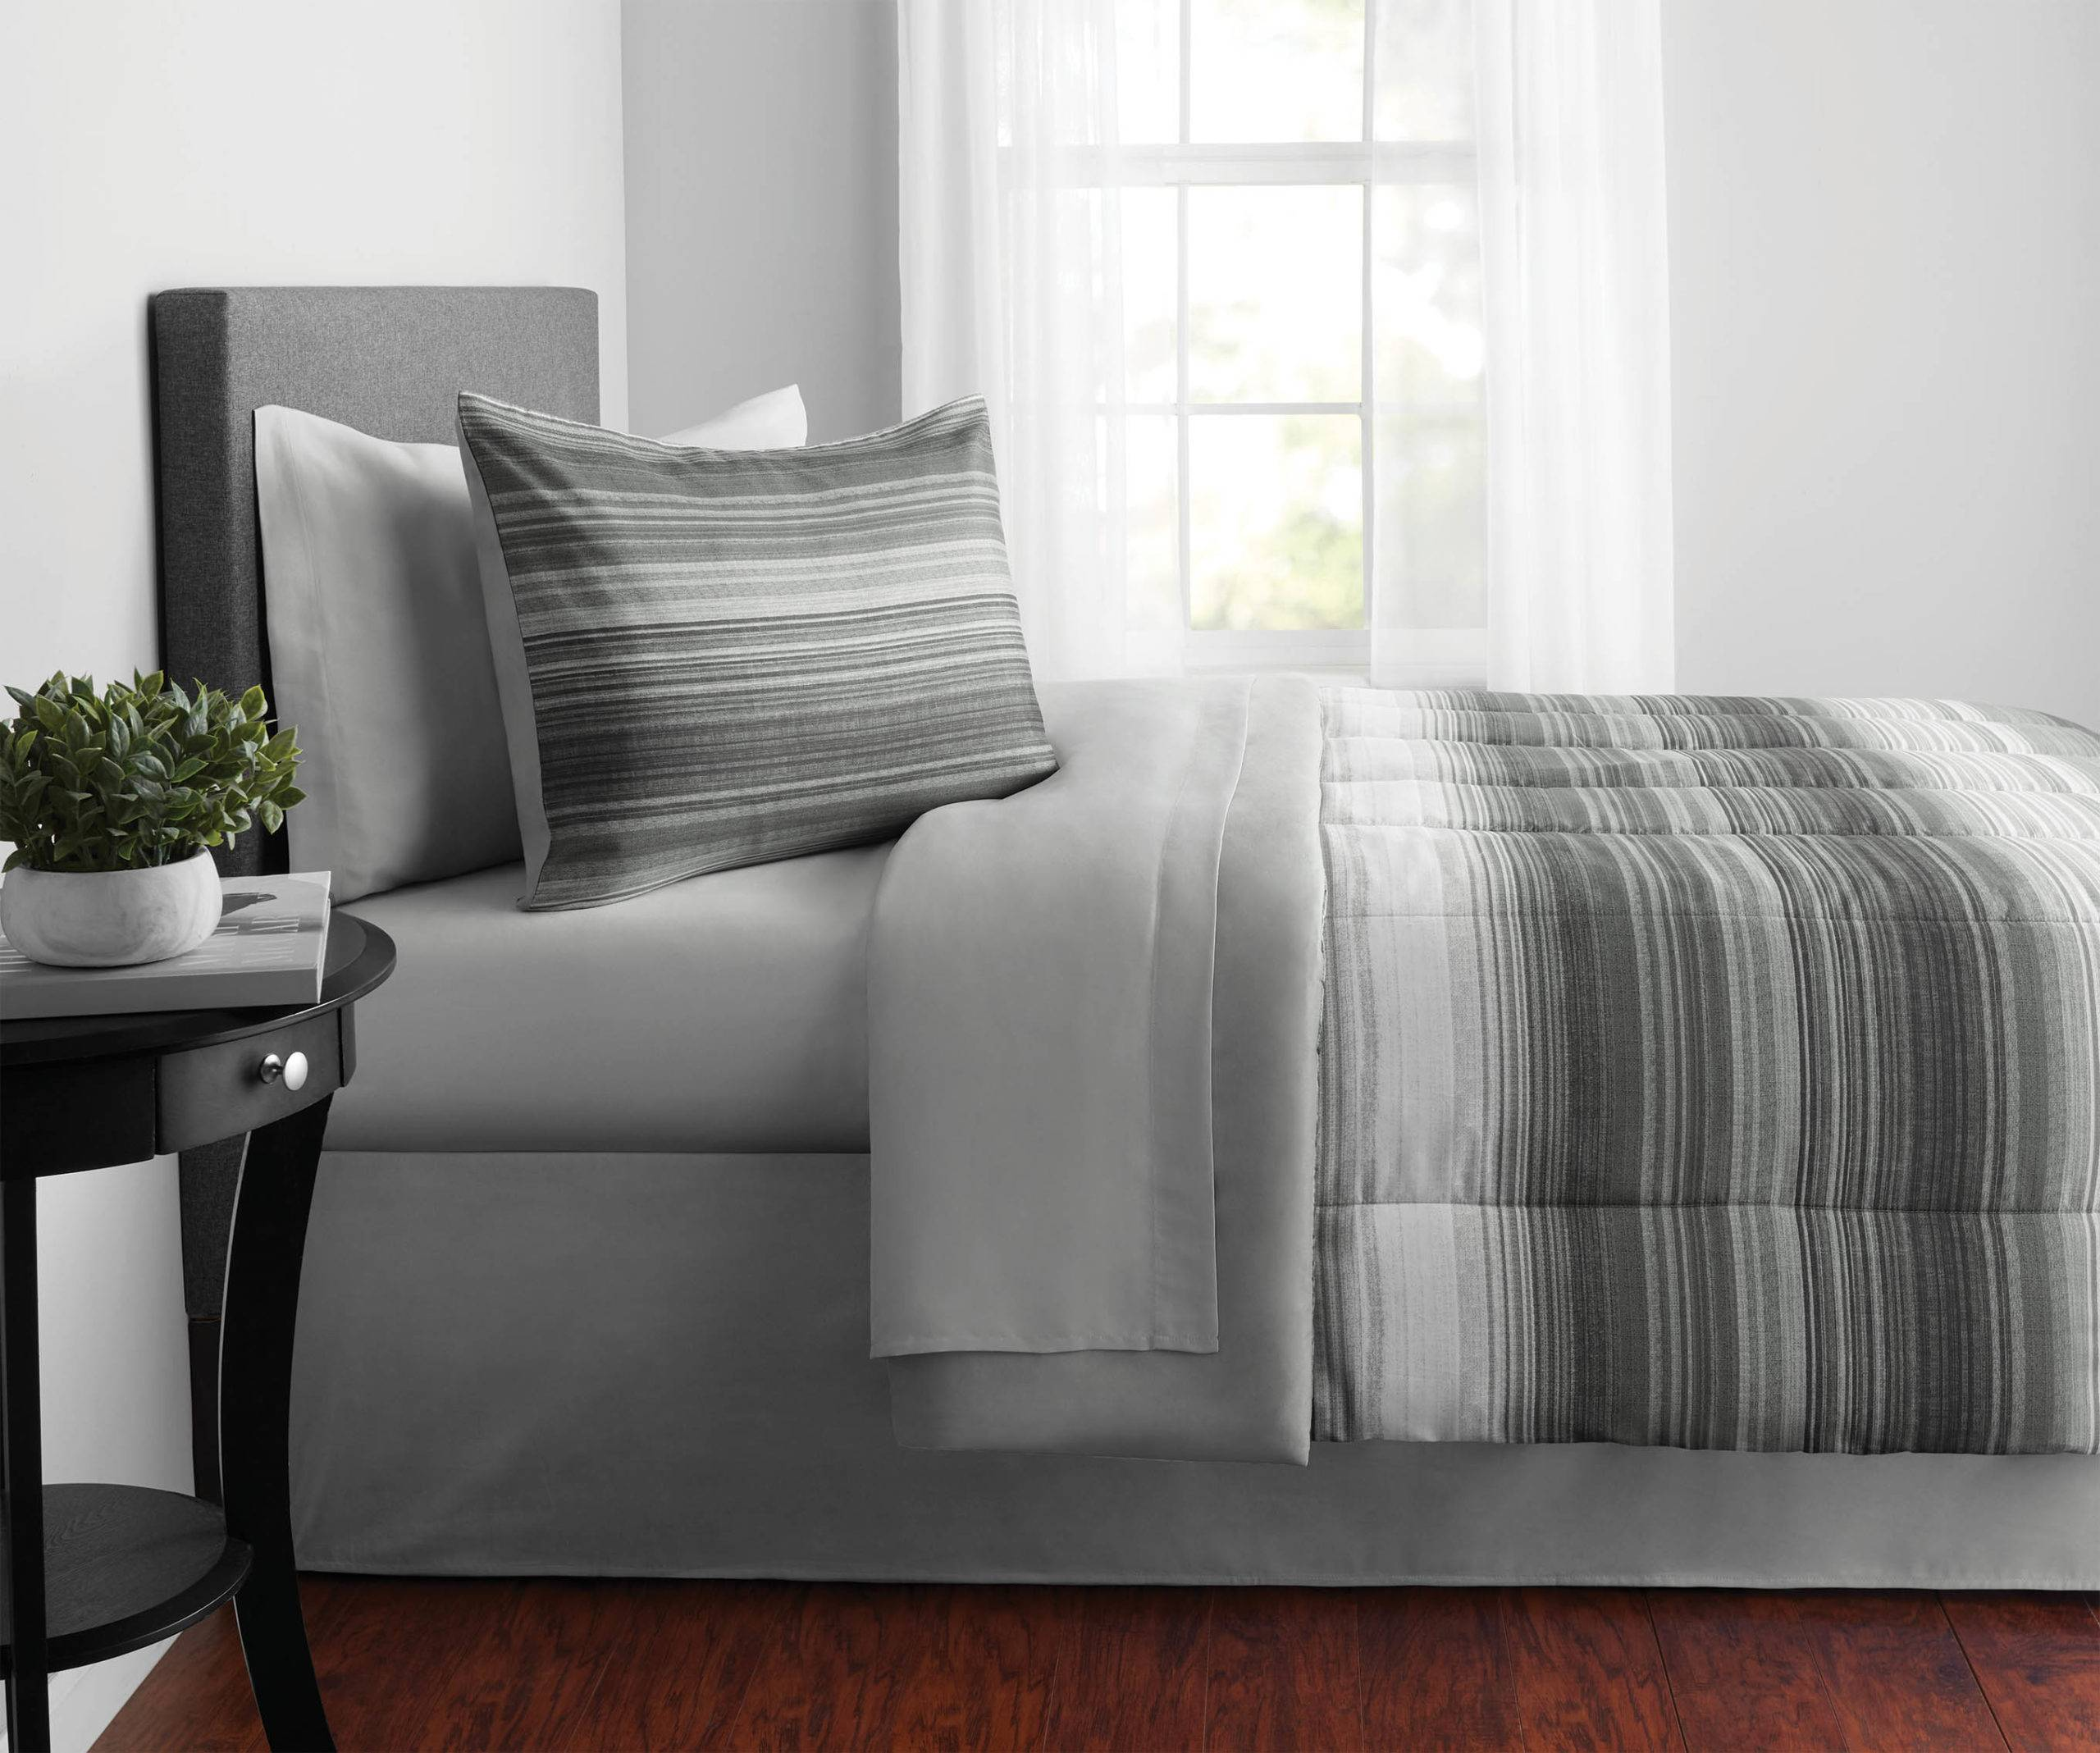 Bed covered in grey sheets with potted plant on the bedside table